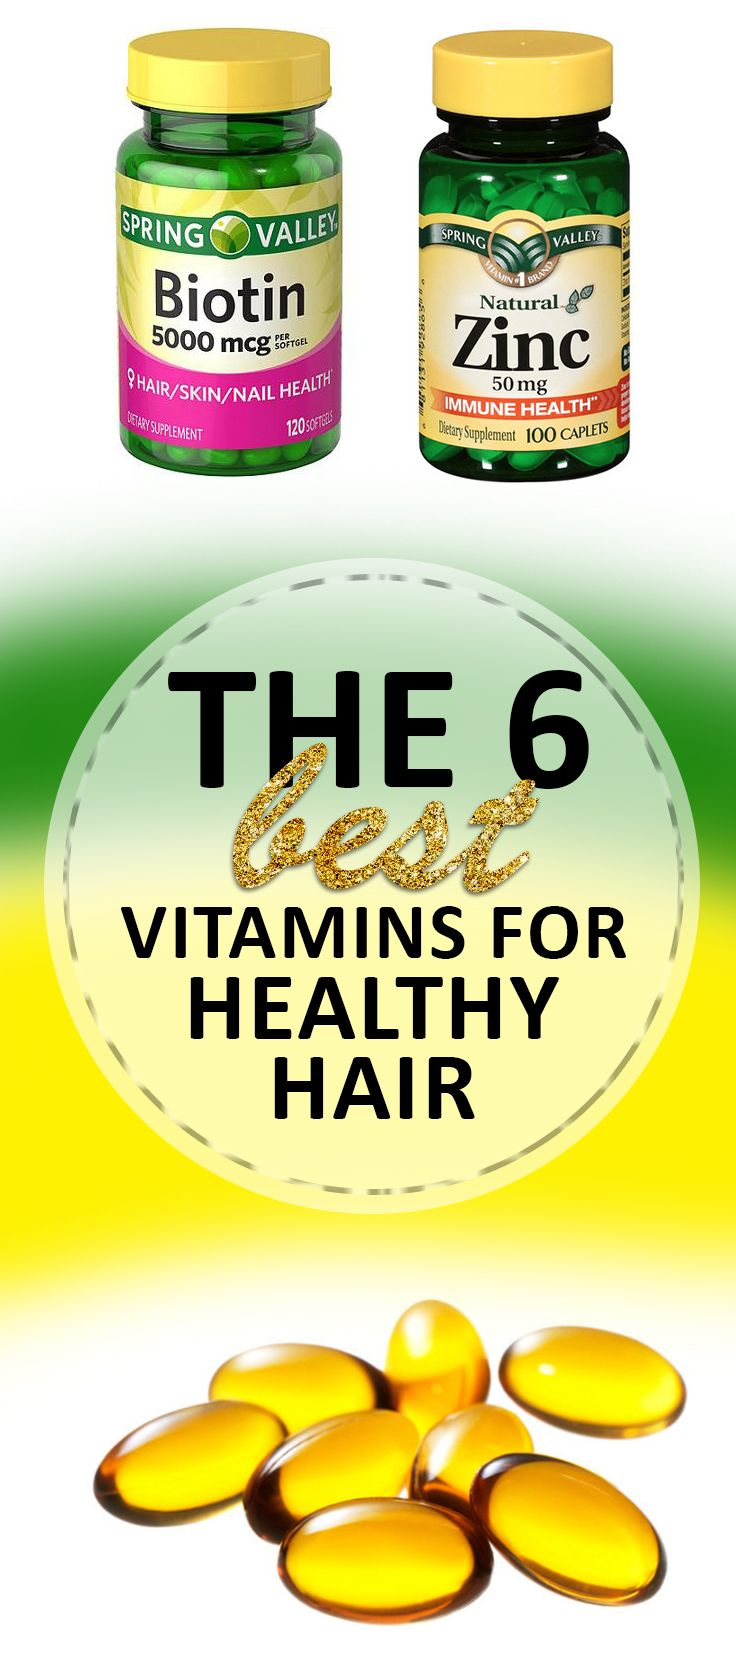 These vitamins will help you have long and healthy hair!